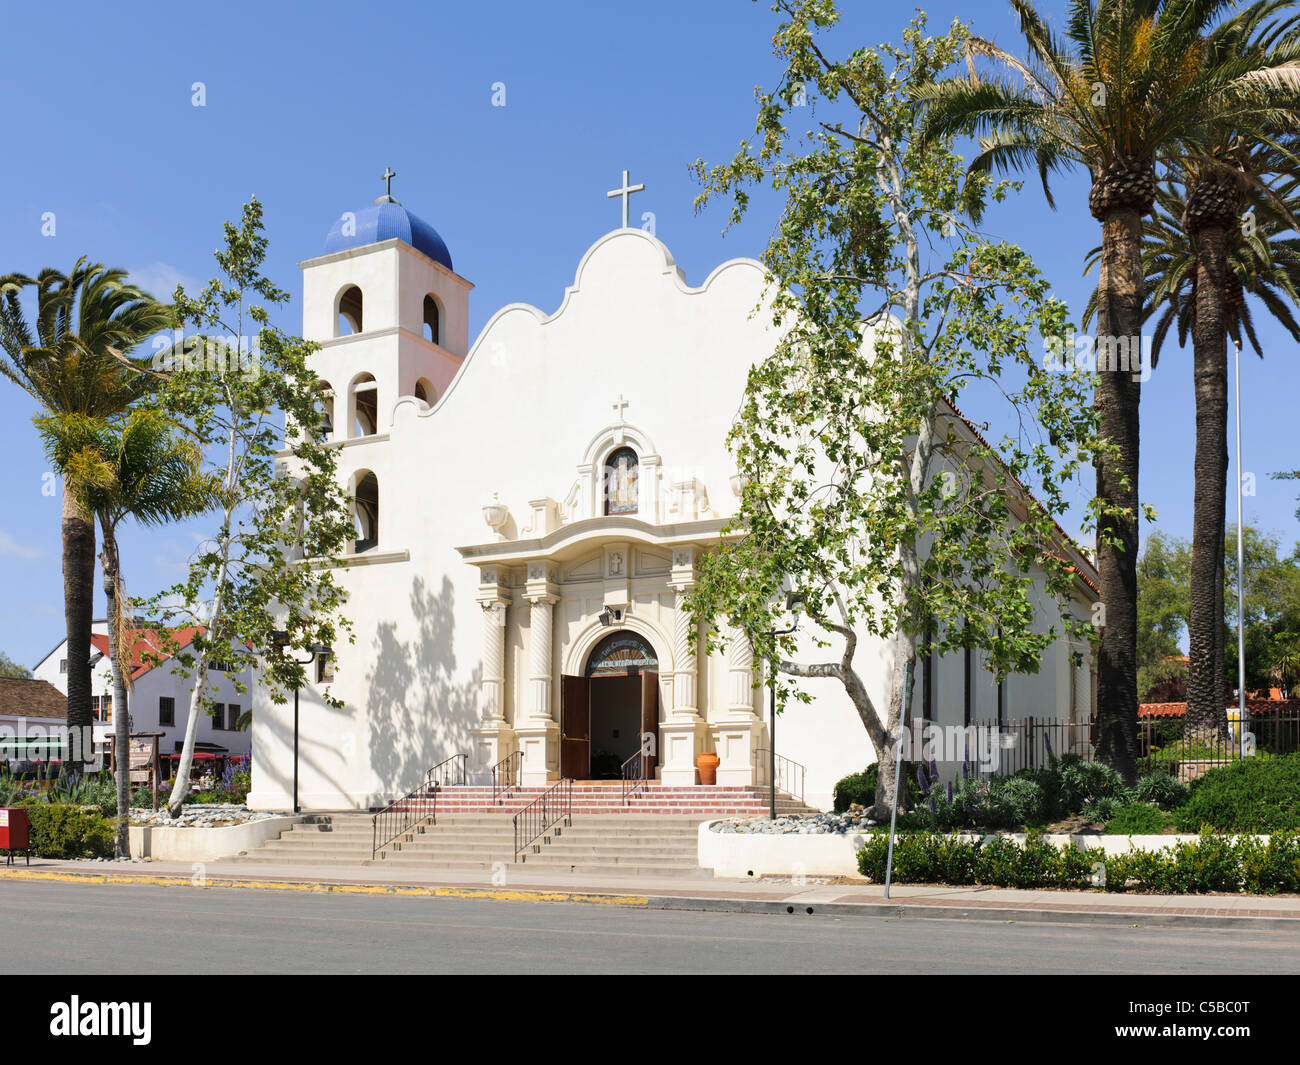 Immaculate Conception Catholic Church, San Diego, CA - Stock Image